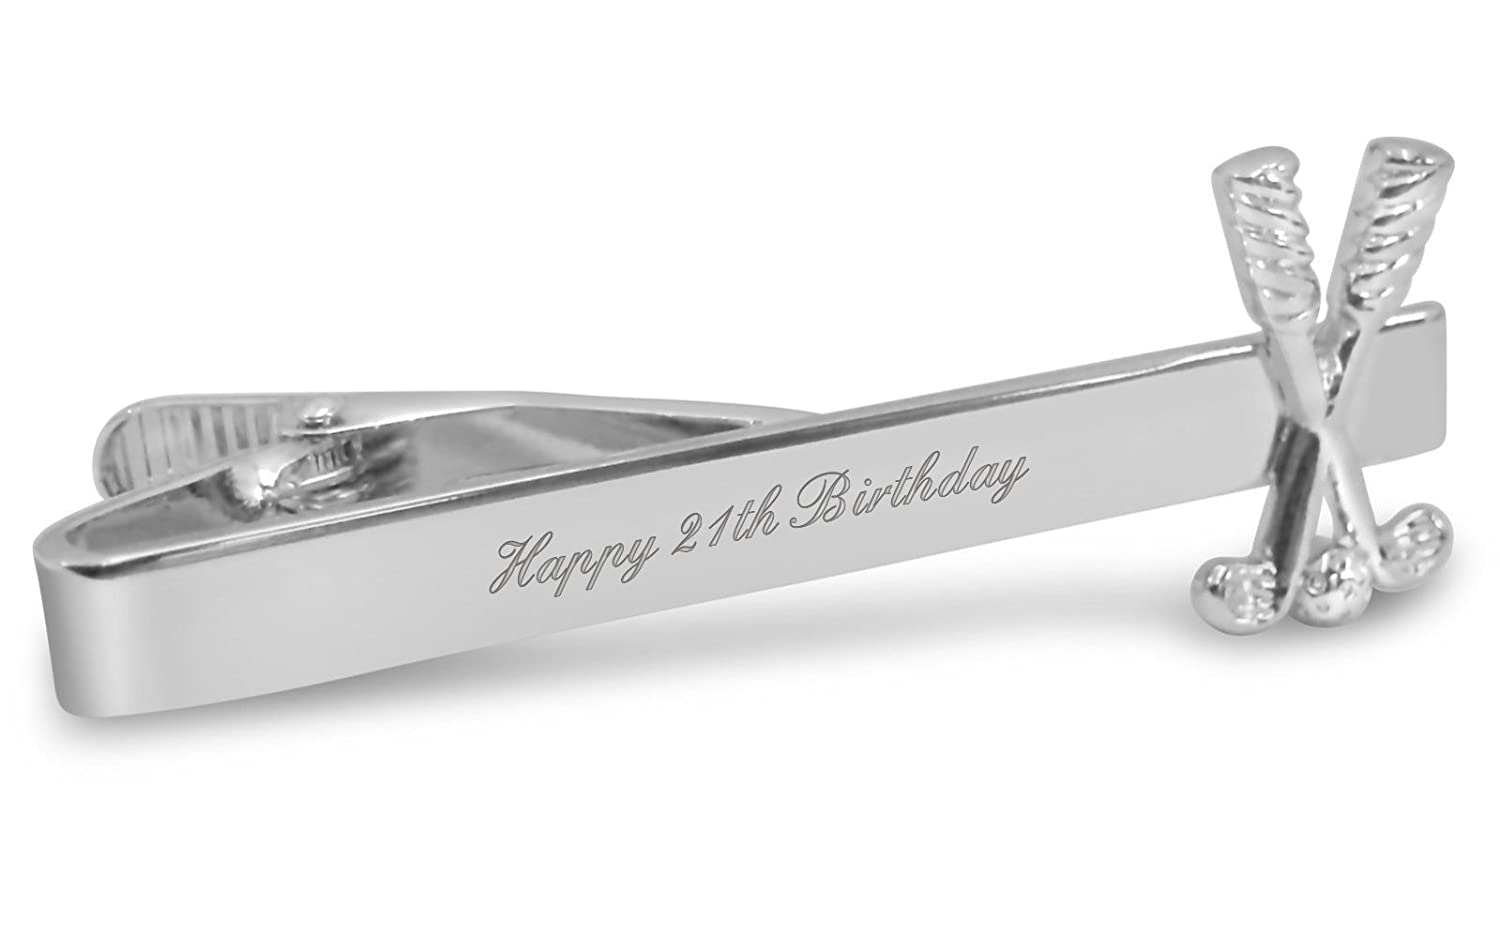 Luxury Engraved Gifts UK Mens Happy 21St Birthday Tie Clip//Pin Ideal Gift A16 Personalised With Up To 30 Letters